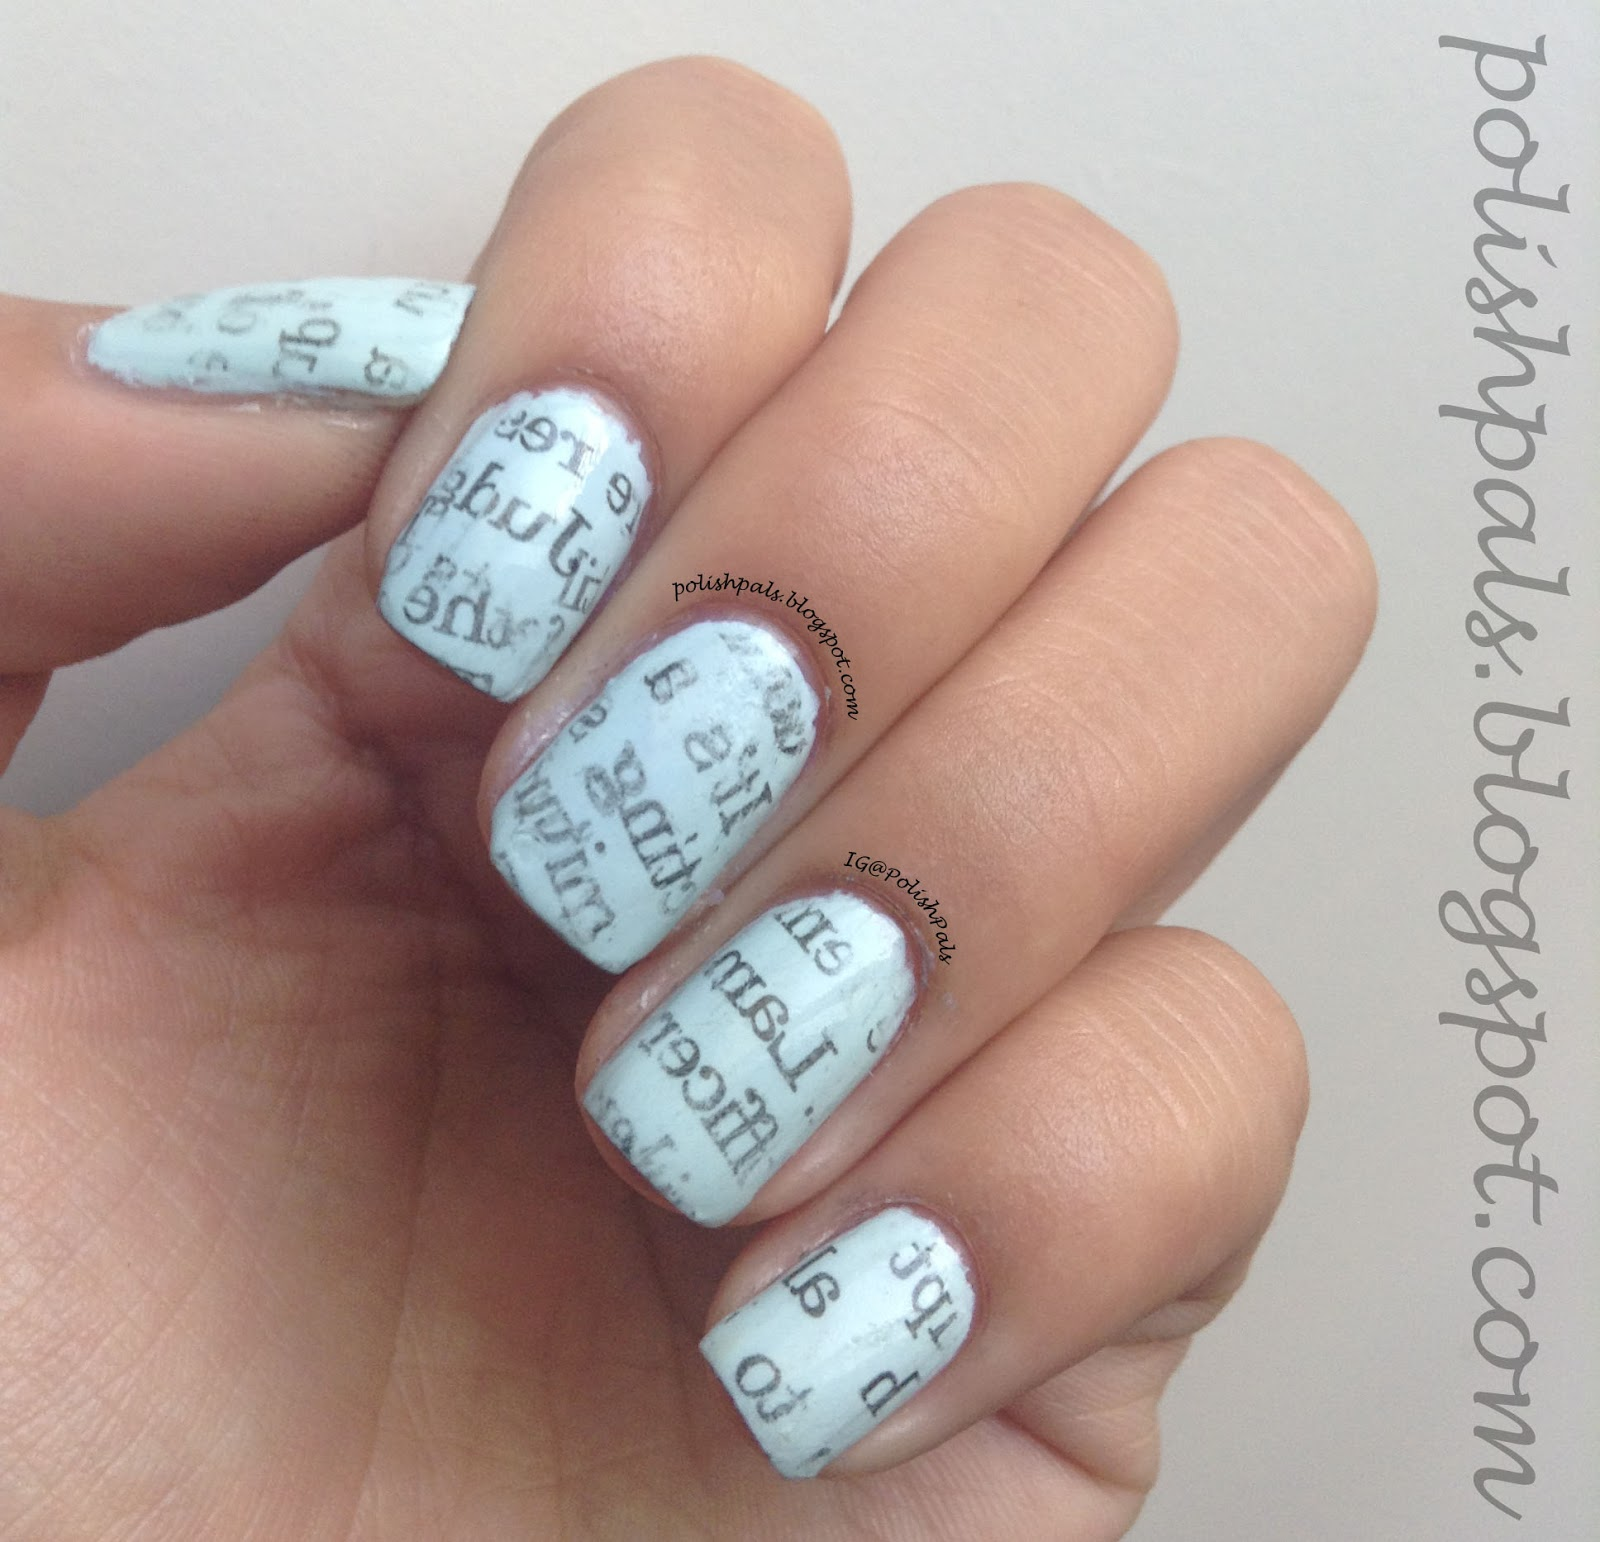 Polish Pals: N is for Newspaper Nails